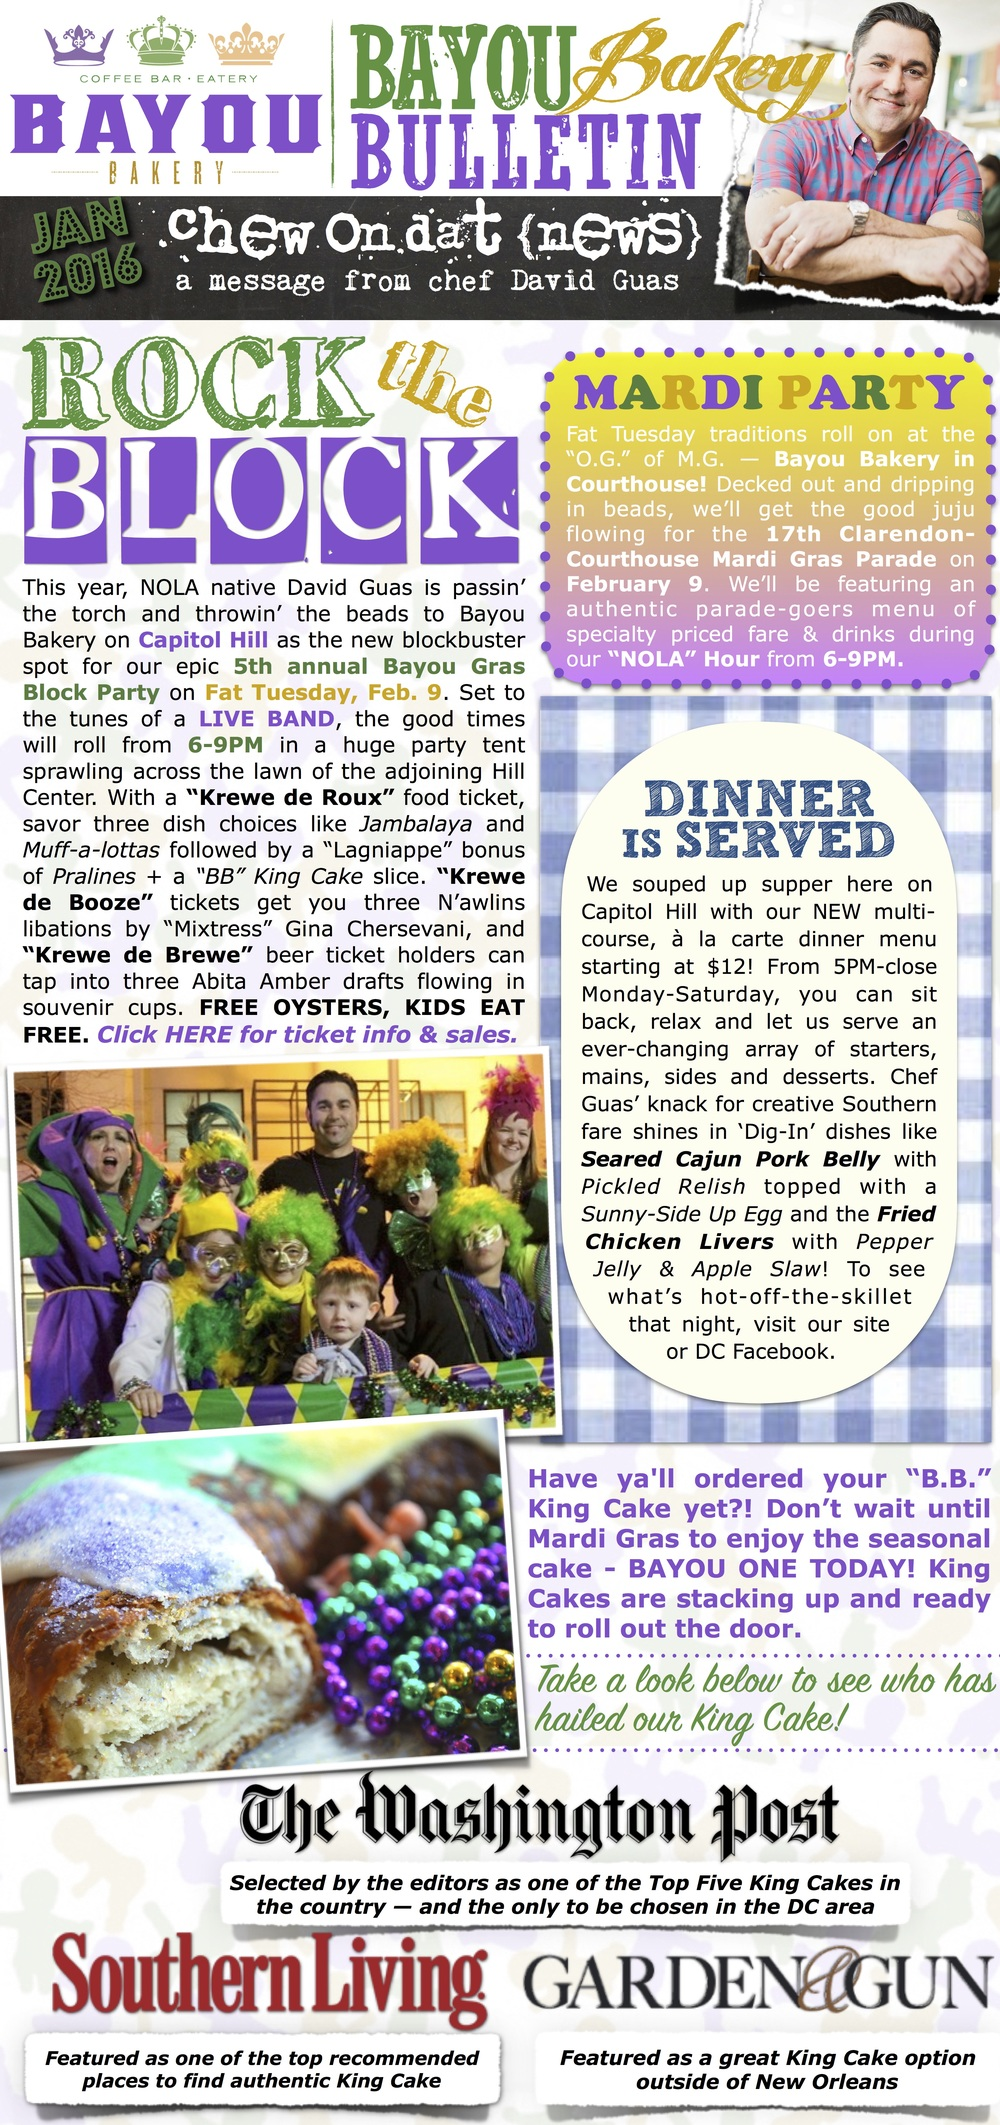 Bayou Bakery Bulletin_Jan 2016.jpg